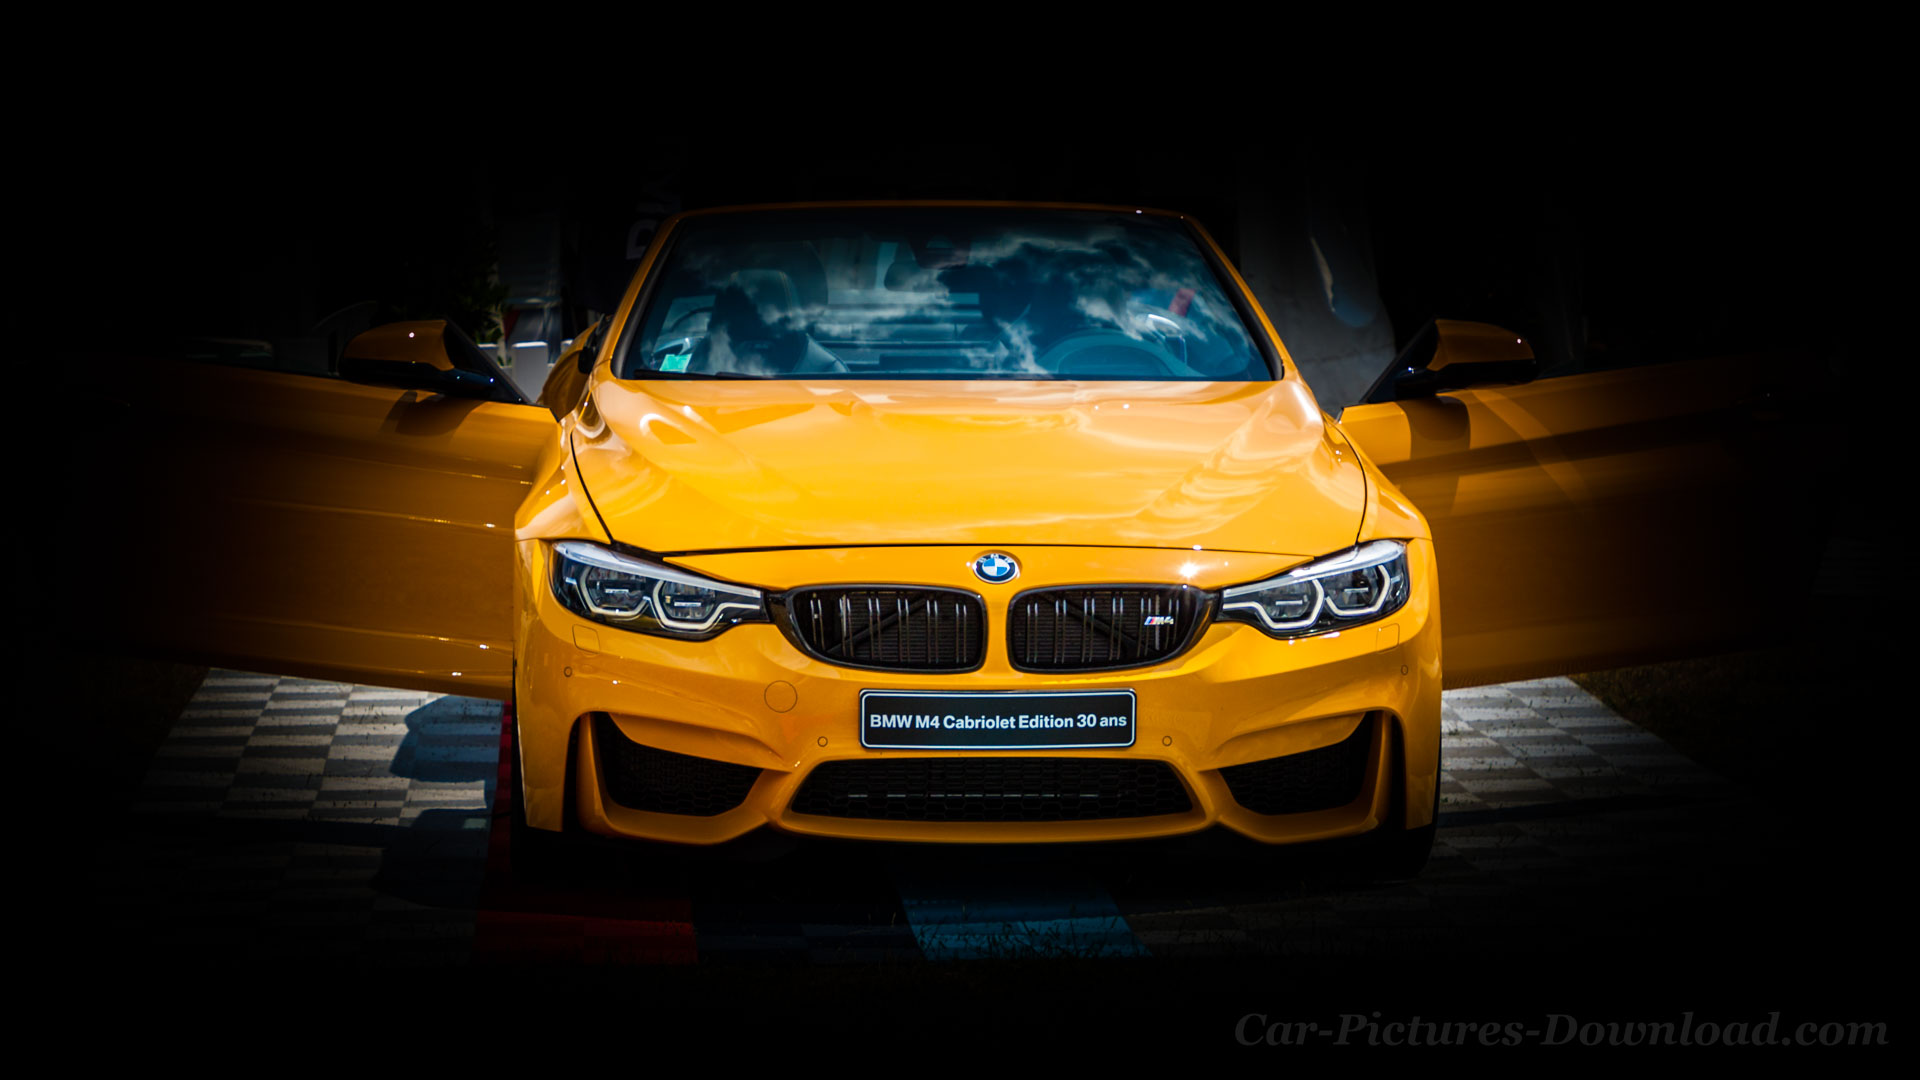 HD Car Wallpapers 1920x1080 For Widescreens PC   Download 1920x1080